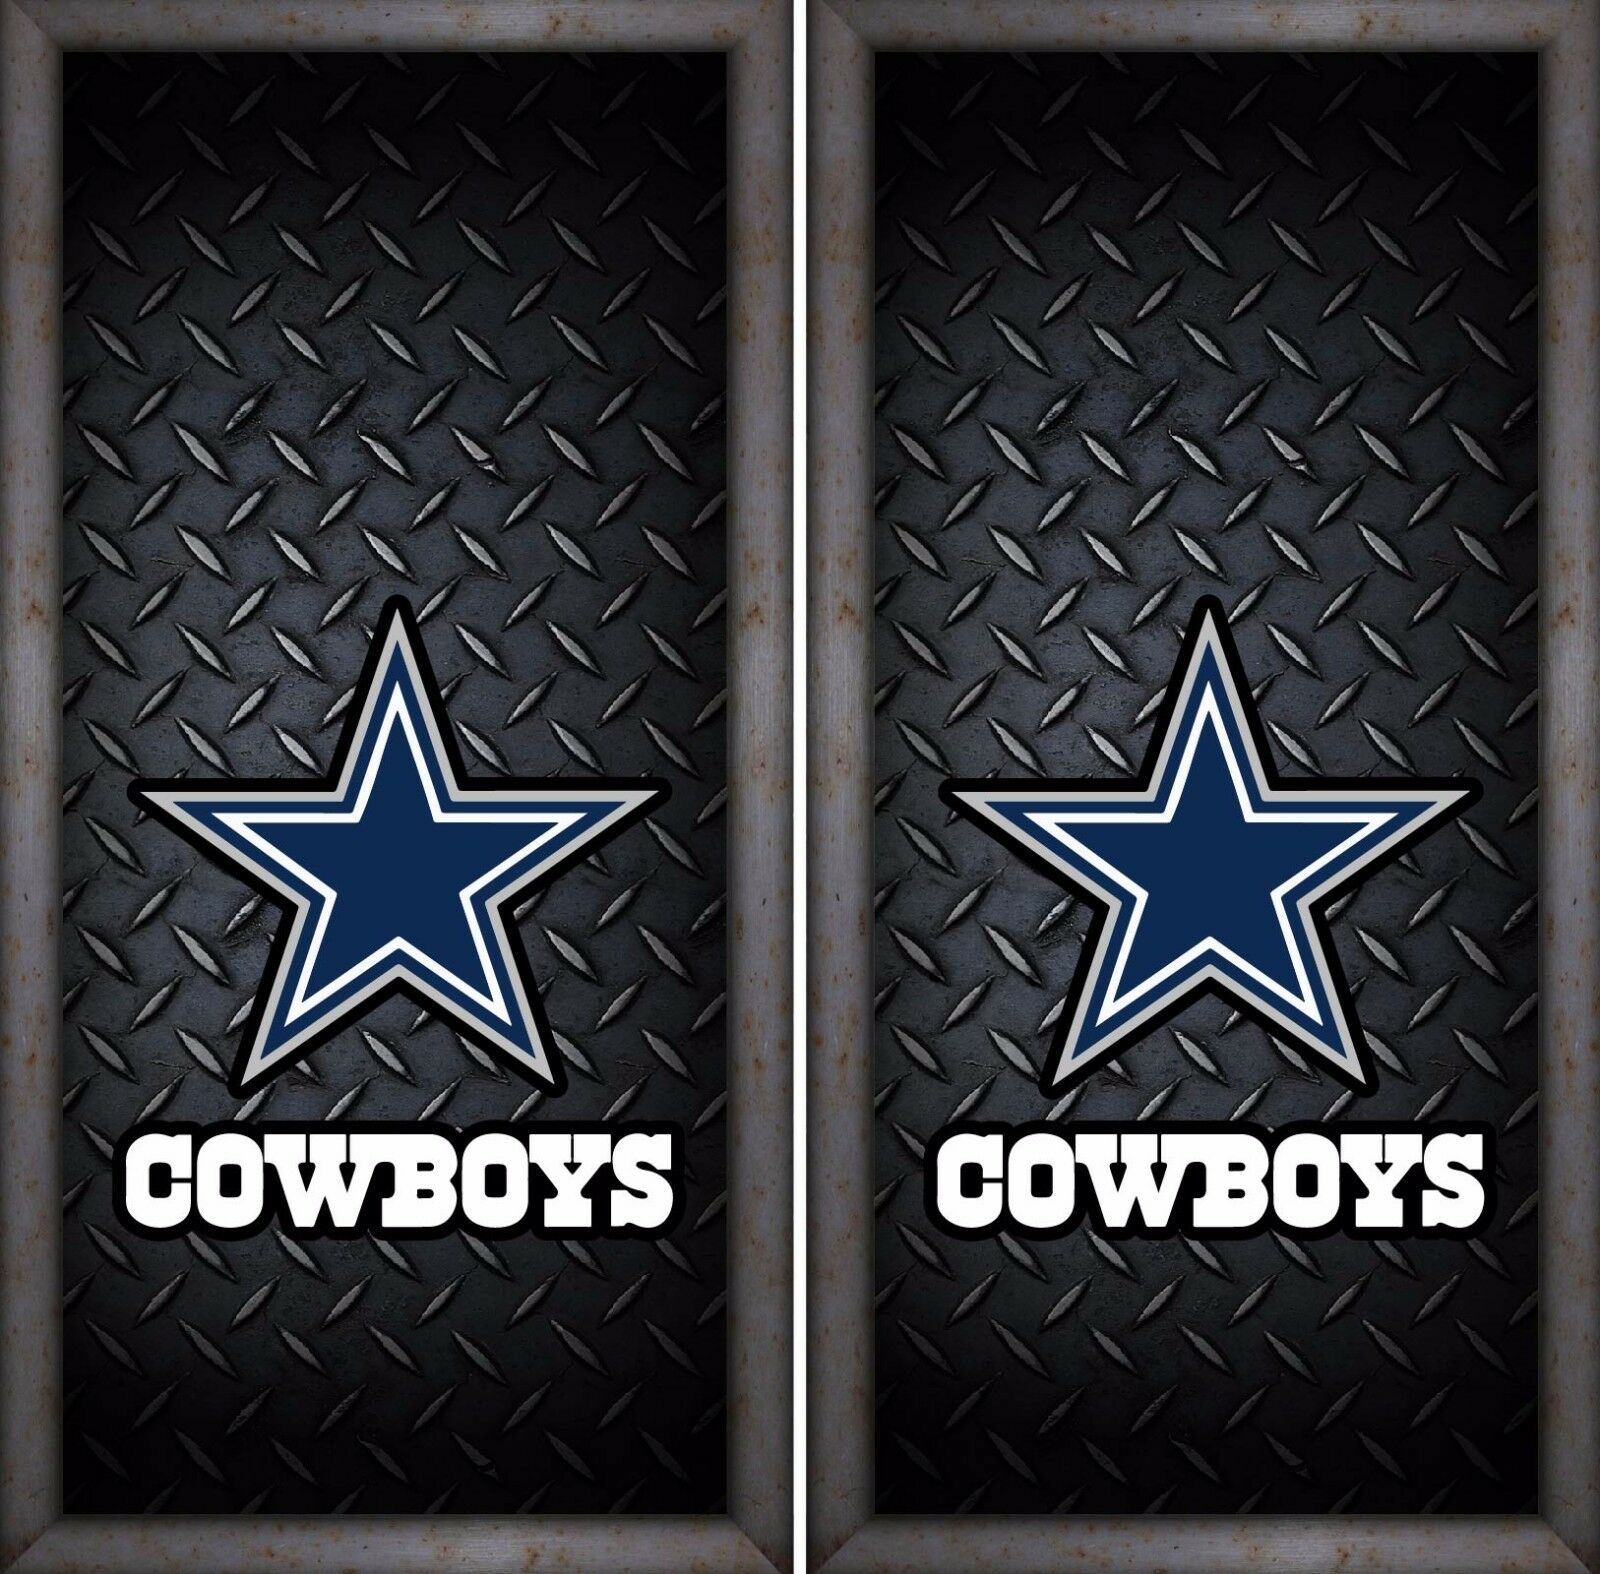 Dallas Cowboys Cornhole Skin Wrap NFL  Football Luxury Design Decal Vinyl DR05  all goods are specials